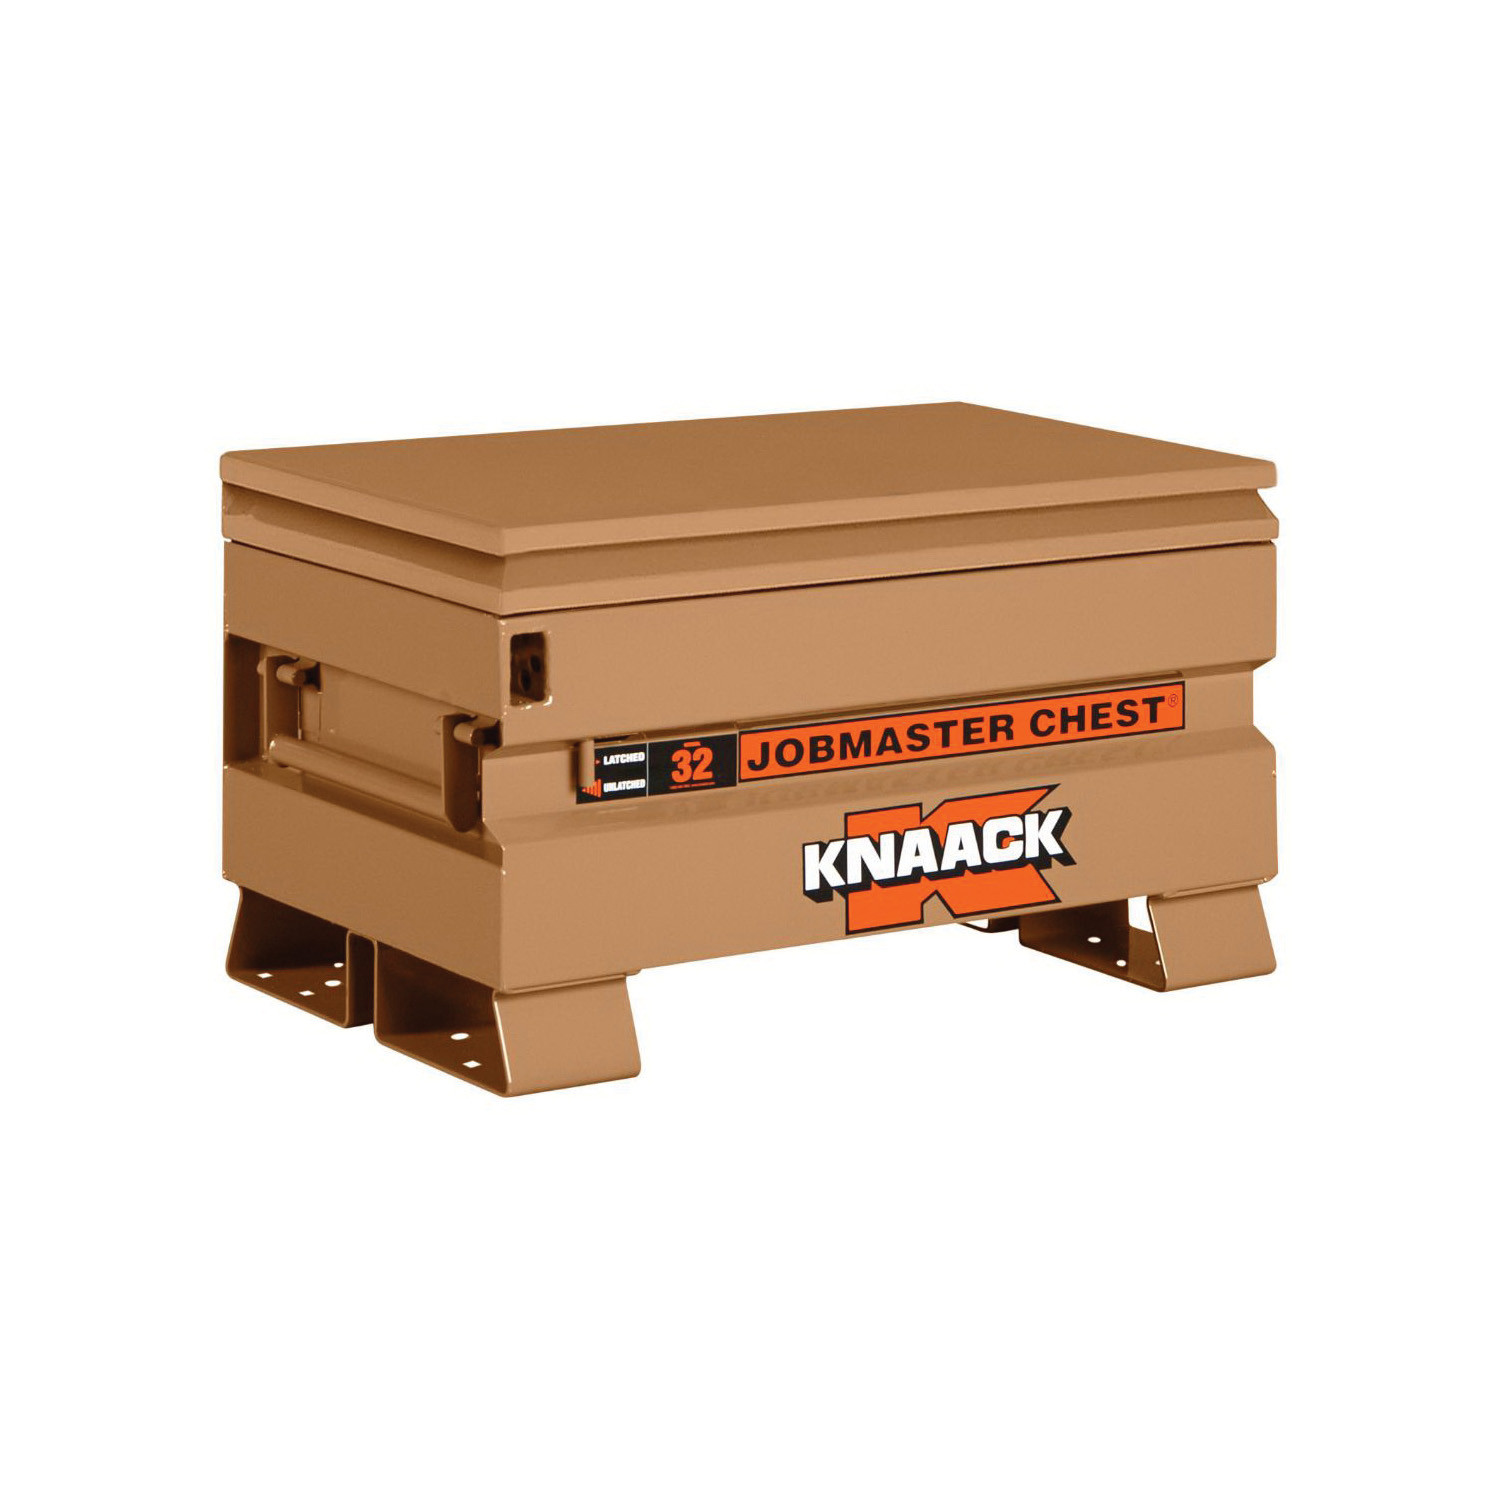 KNAACK® JOBMASTER® 32 Chest Box, 18-1/2 in x 19 in W x 32 in D, 5 cu-ft Storage, Steel